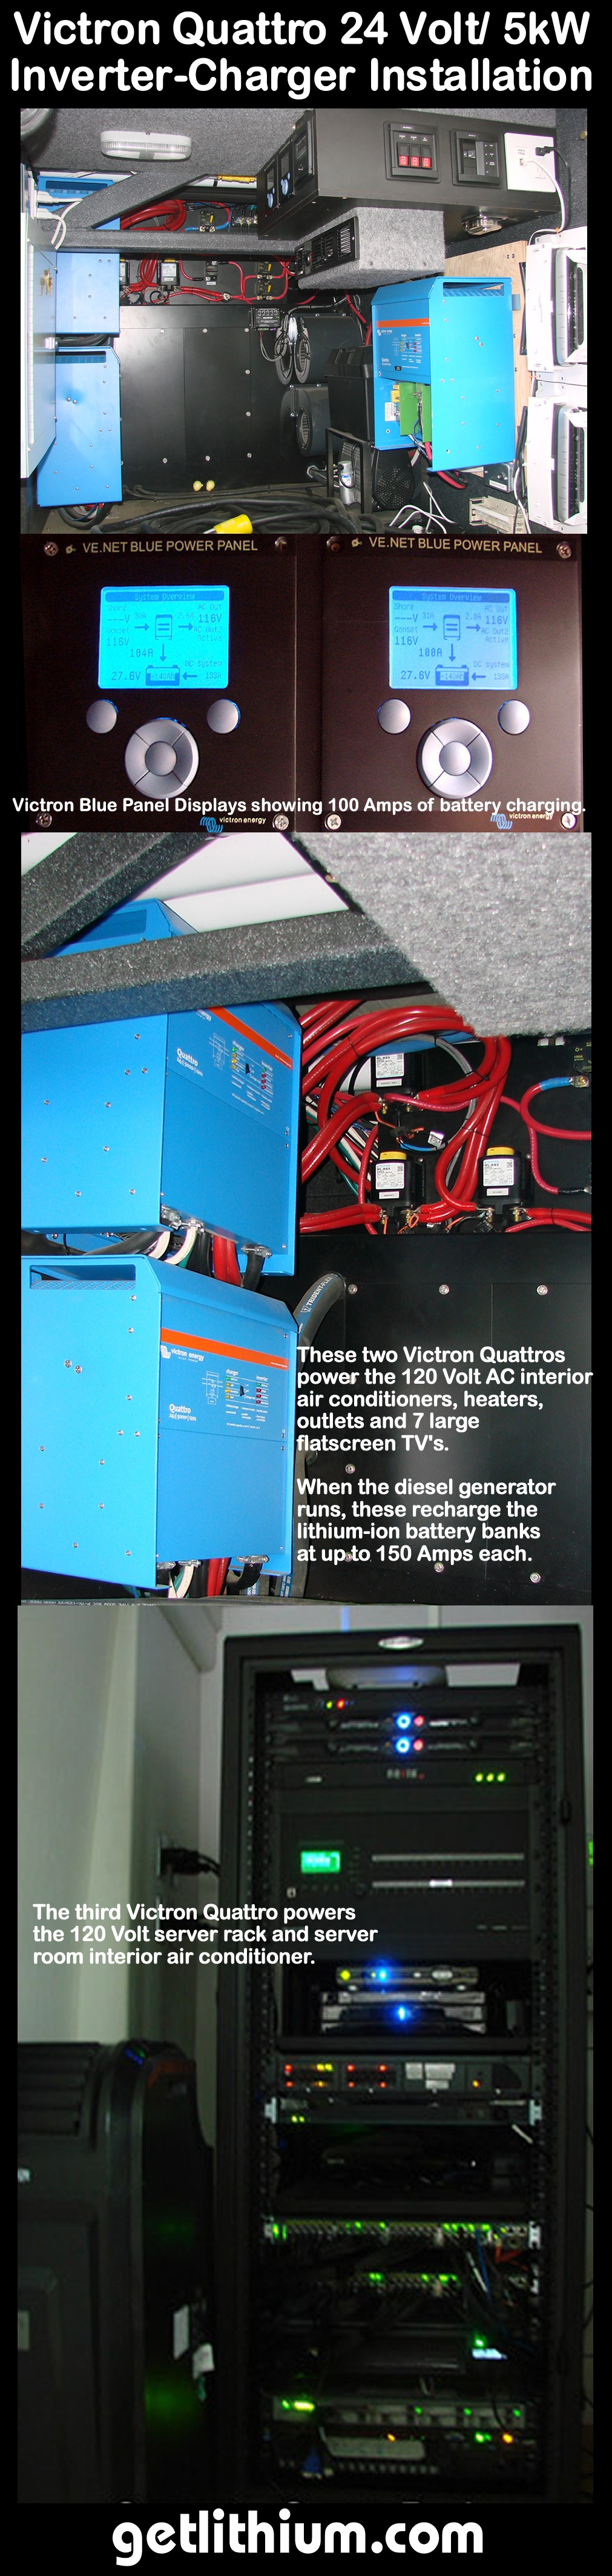 Lithium Ion Battery Installations Page Some Of The Lithionics Battery Lithium Ion Battery Projects We Have Completed For Rv And Marine Applications